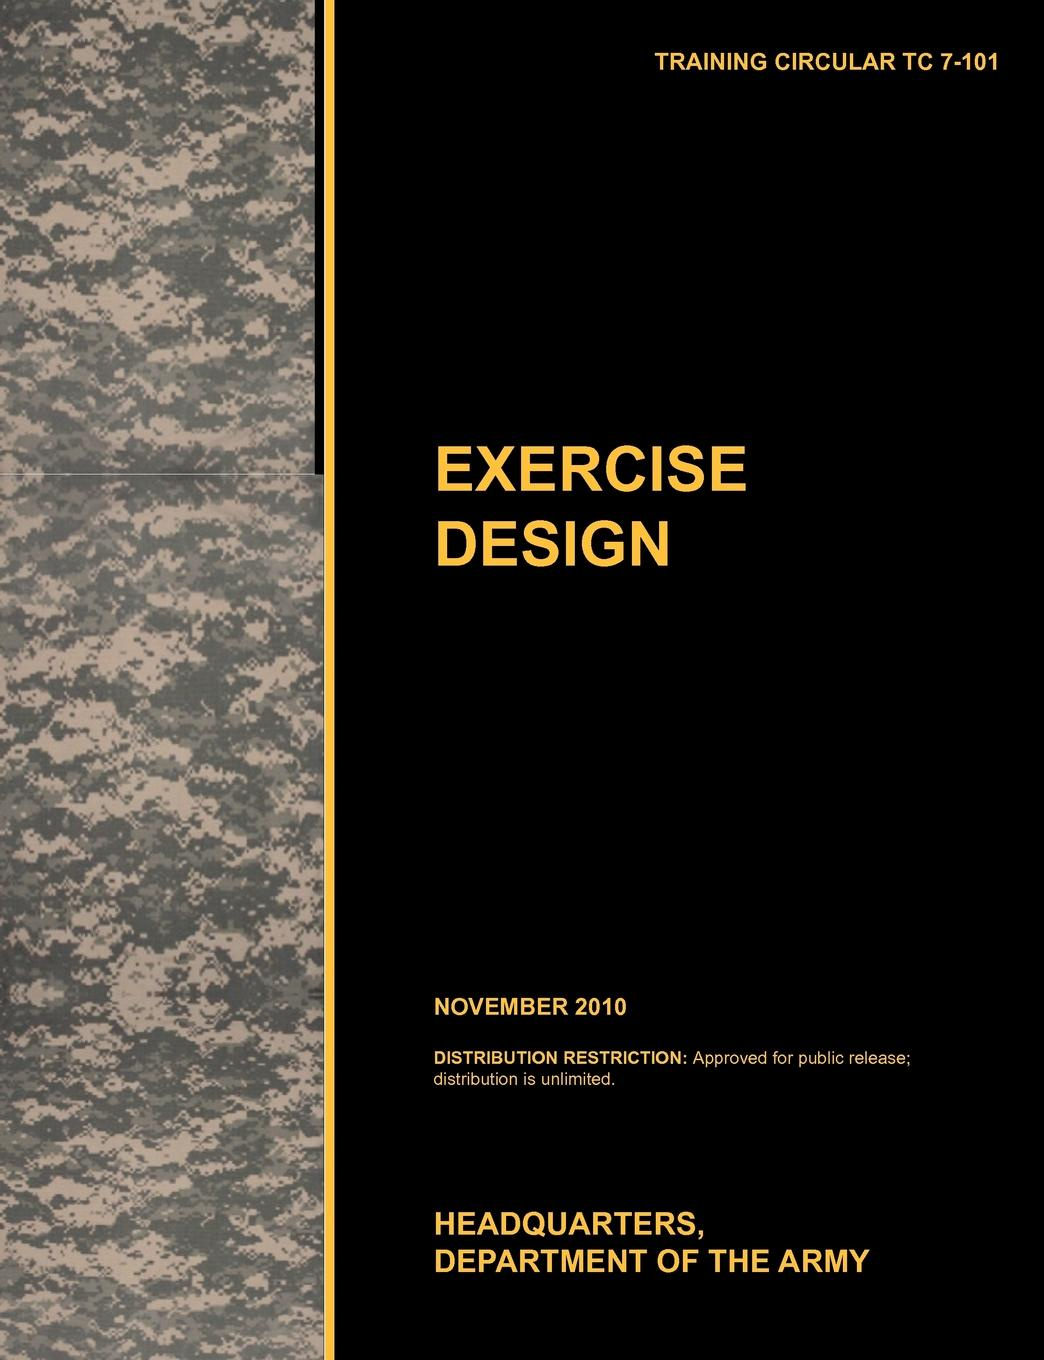 U. S. Army Training and Doctrine Command, U. S. Department of the Army Excercise Design. The Official U.S. Army Training Manual Tc 7-101 November 2010) u s army training and doctrine command army aviation center of excellence u s department of the army aviation maintenance the official u s army training circular tc 3 04 7 fm 3 04 500 february 2010